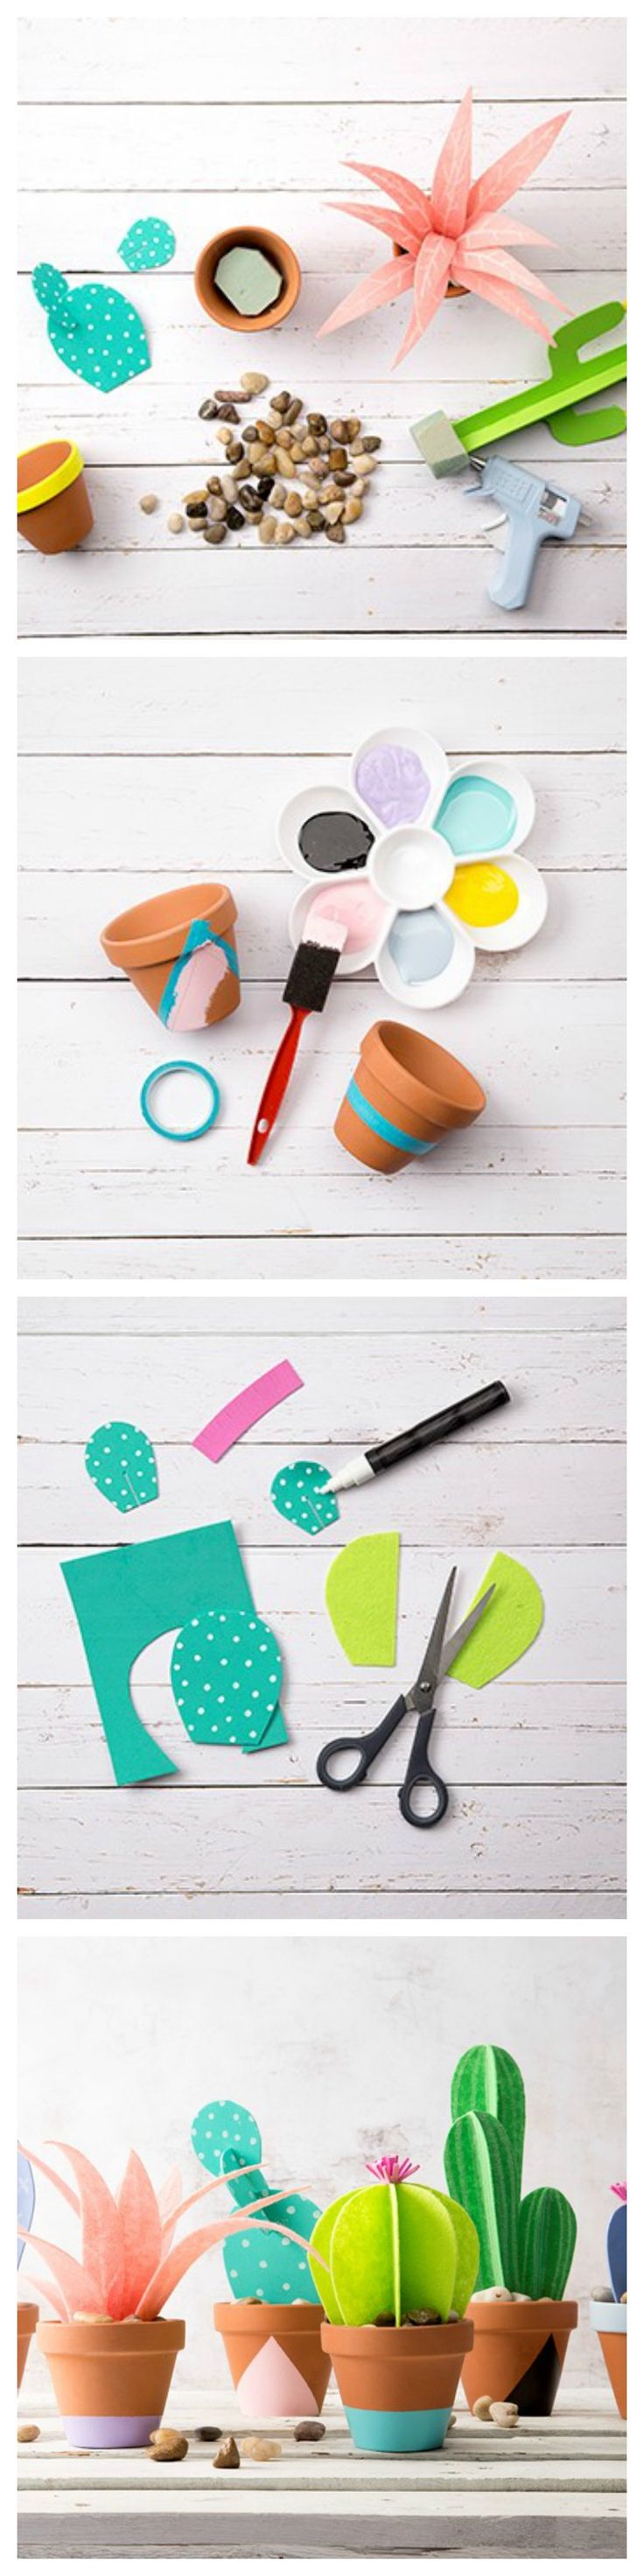 147 best home decor images on pinterest craft projects home then a diy paper cactus planter is perfect